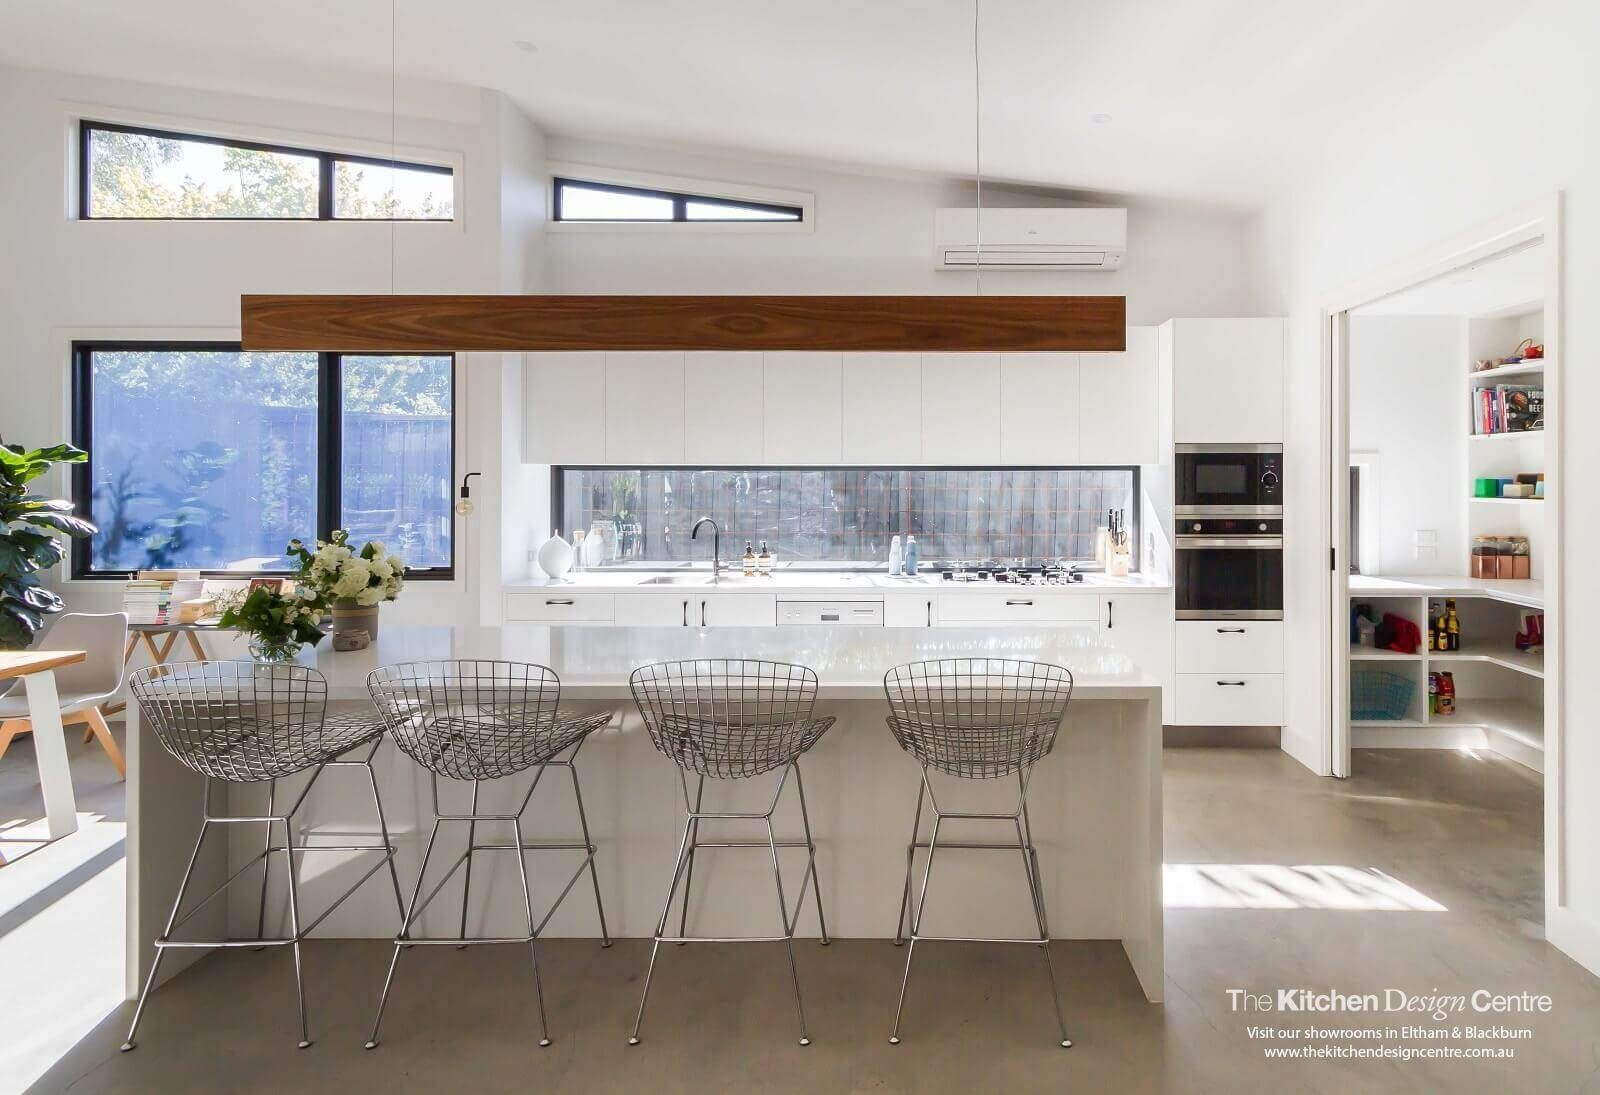 Contemporary Kitchens - The Kitchen Design Centre   Thoughts for ...